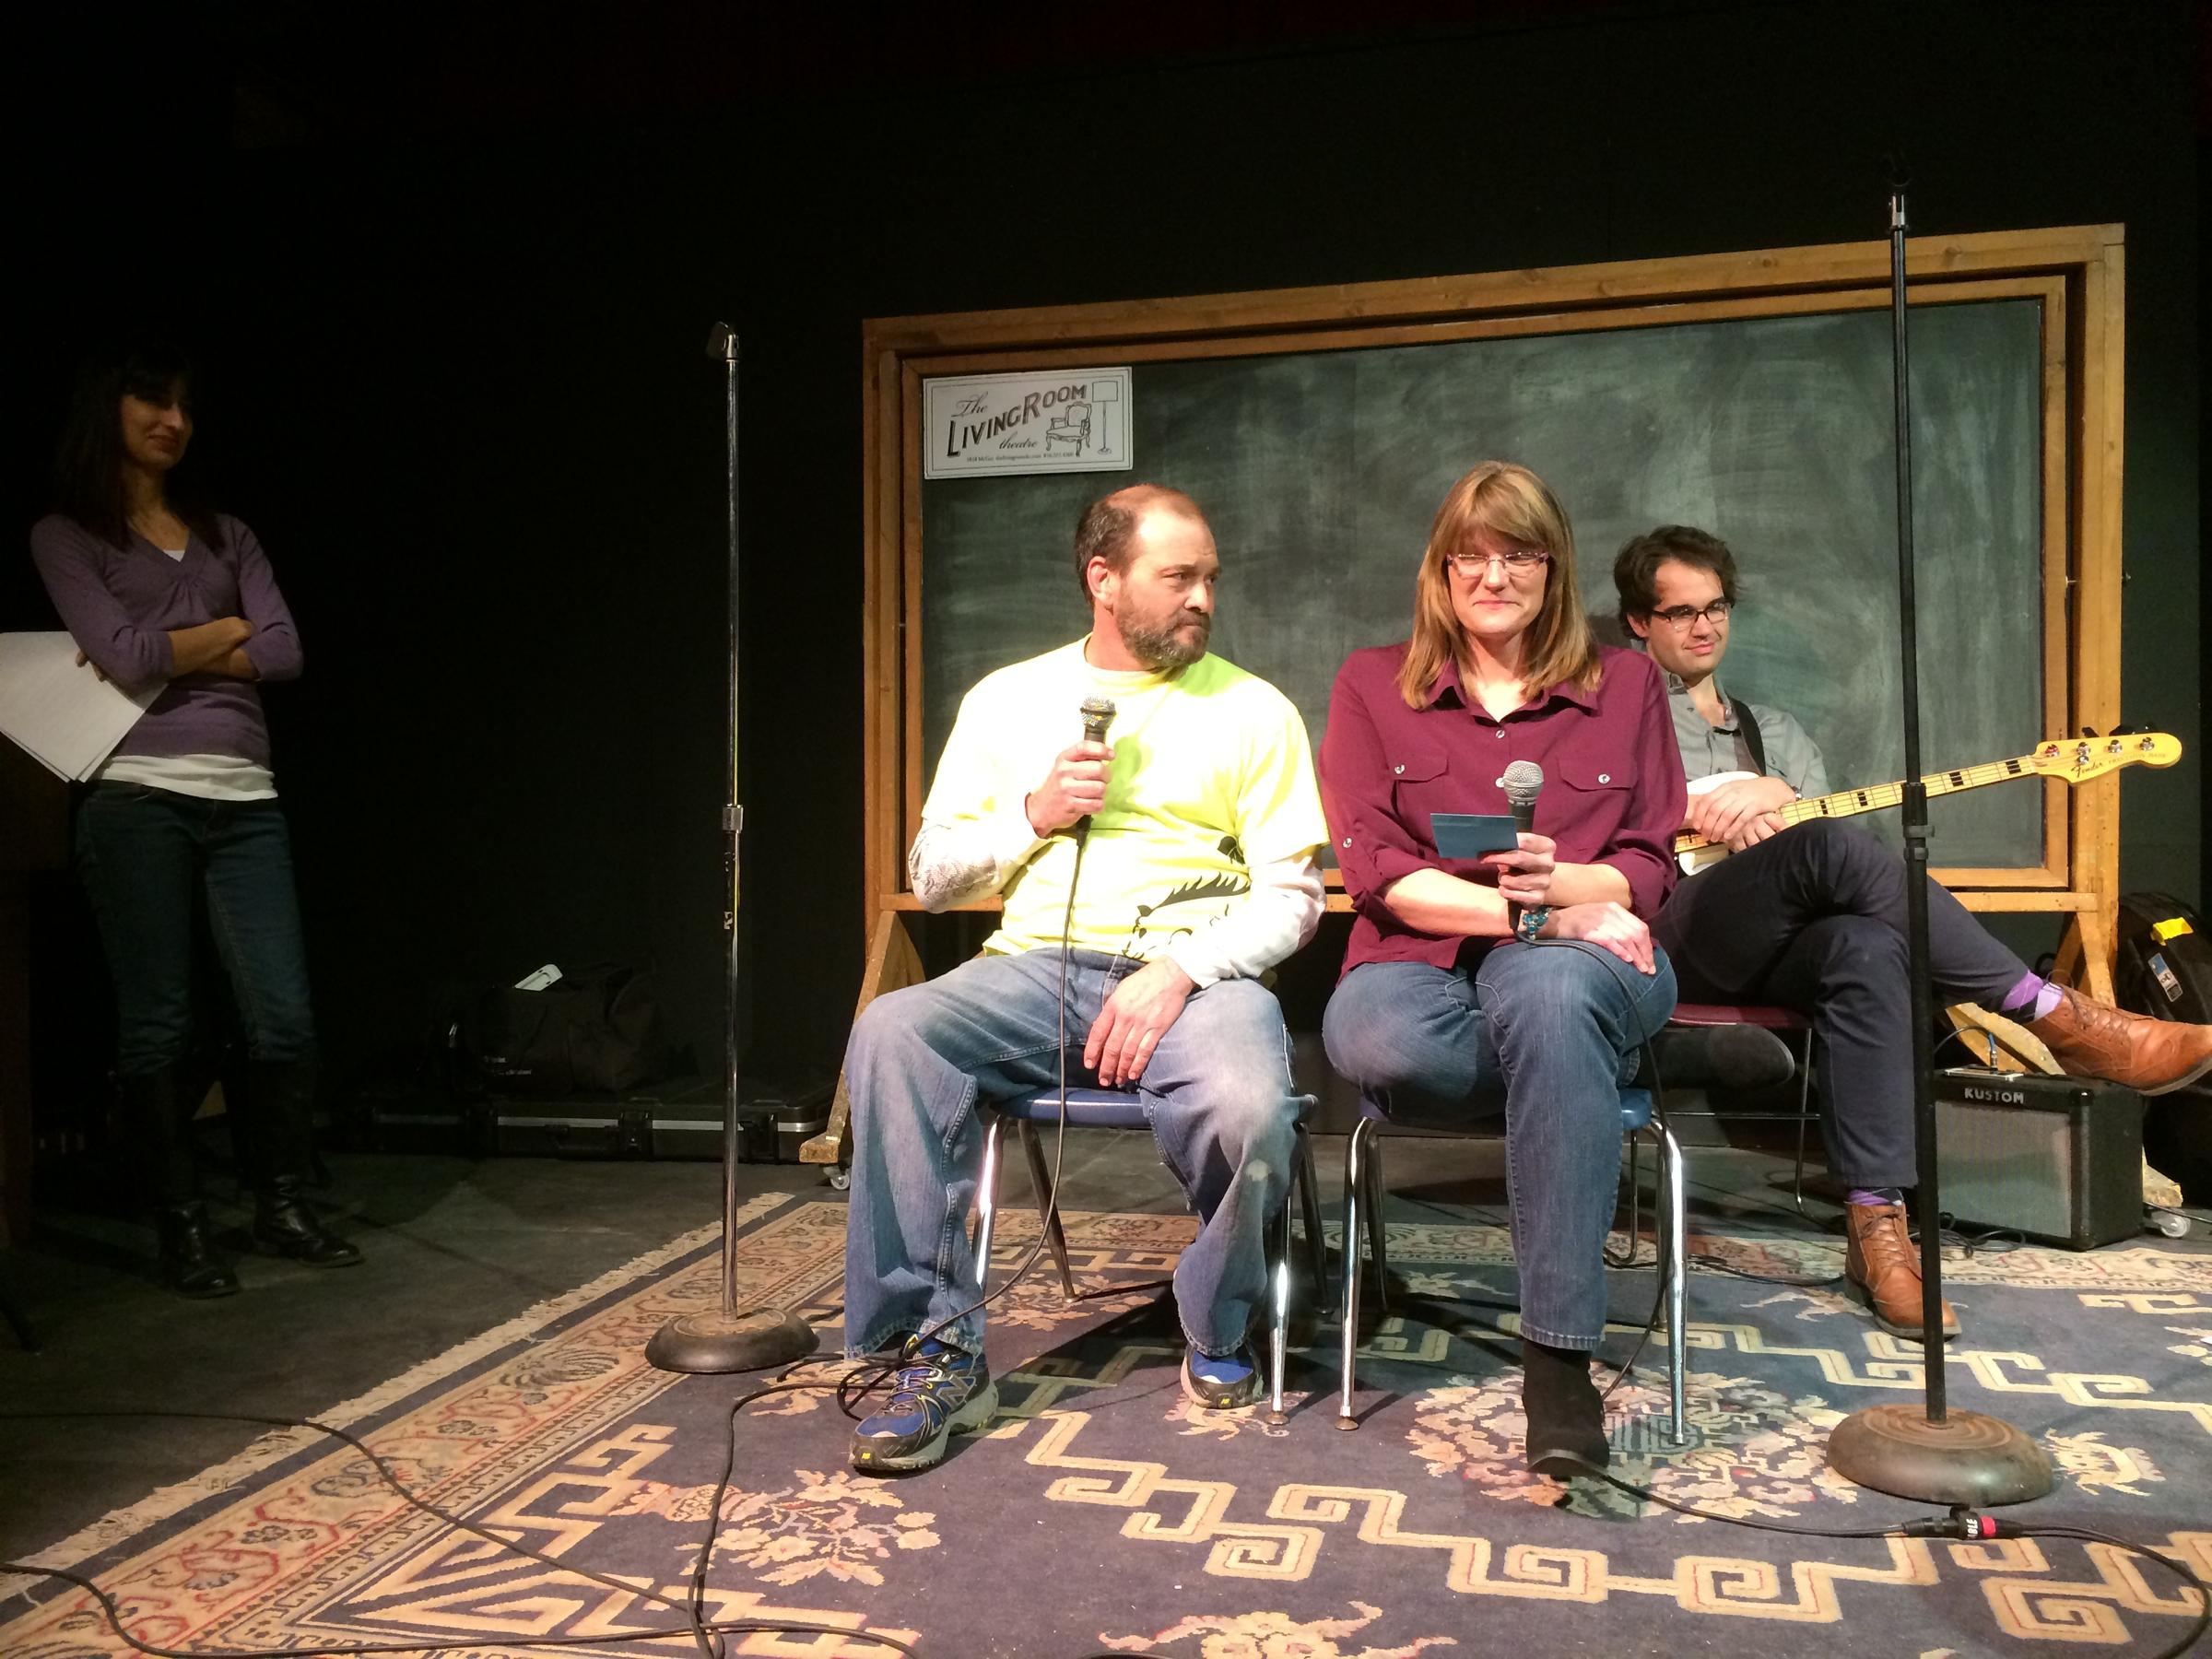 Parents Of Children With Autism Find >> Parents Of Kids With Autism Find Catharsis And Community In Standup